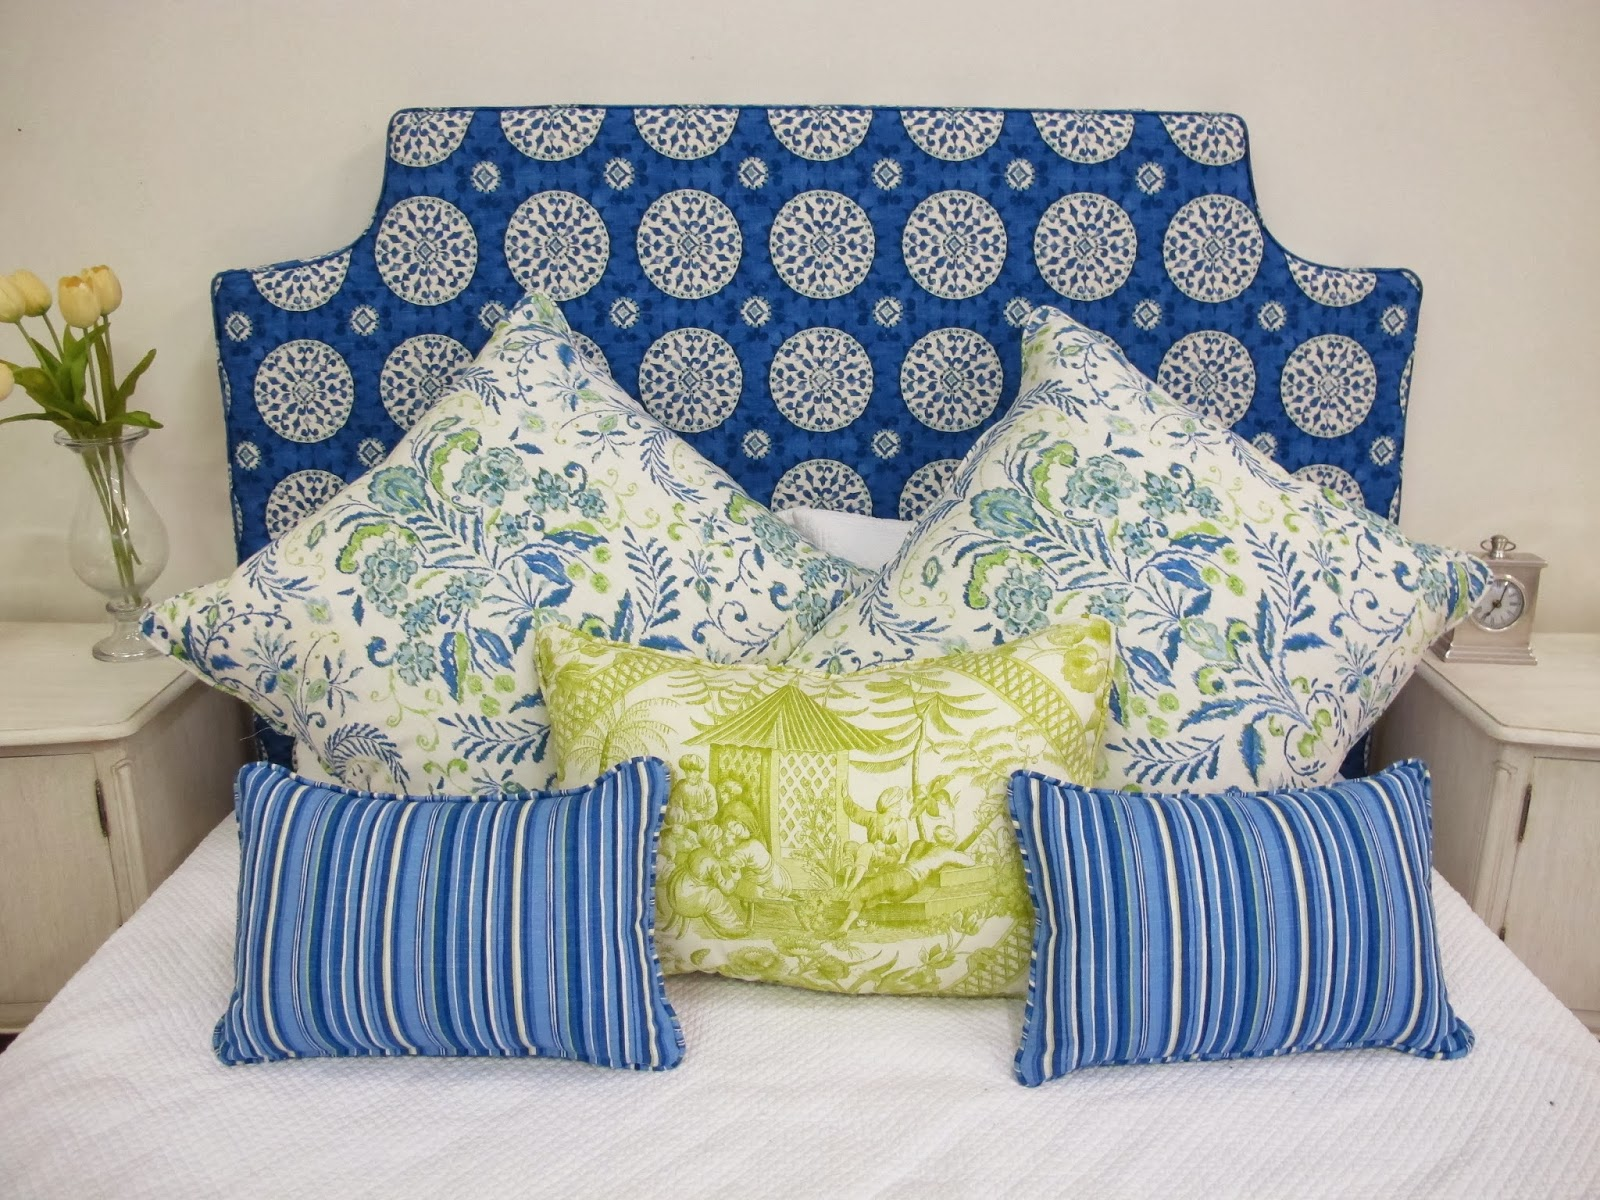 Patterned fabric used on padded bedhead made by Bedhead design, removable loose cover.